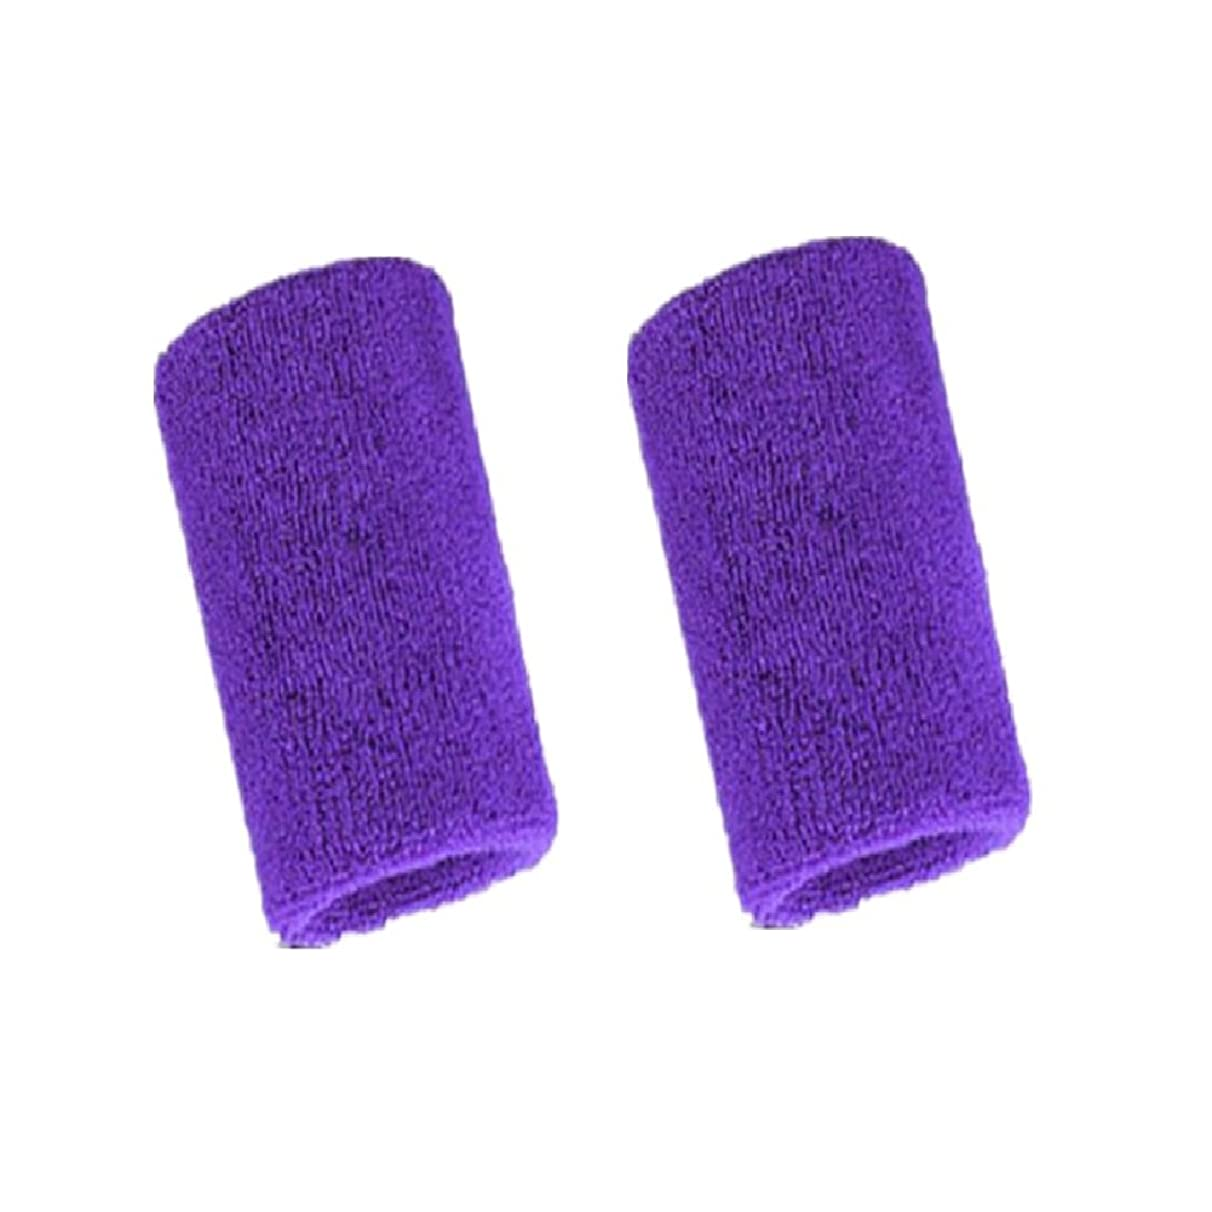 Mcolics 4' Inch Wrist Sweatband in 11 Athletic Cotton Wristbands Armbands (1 Pair)